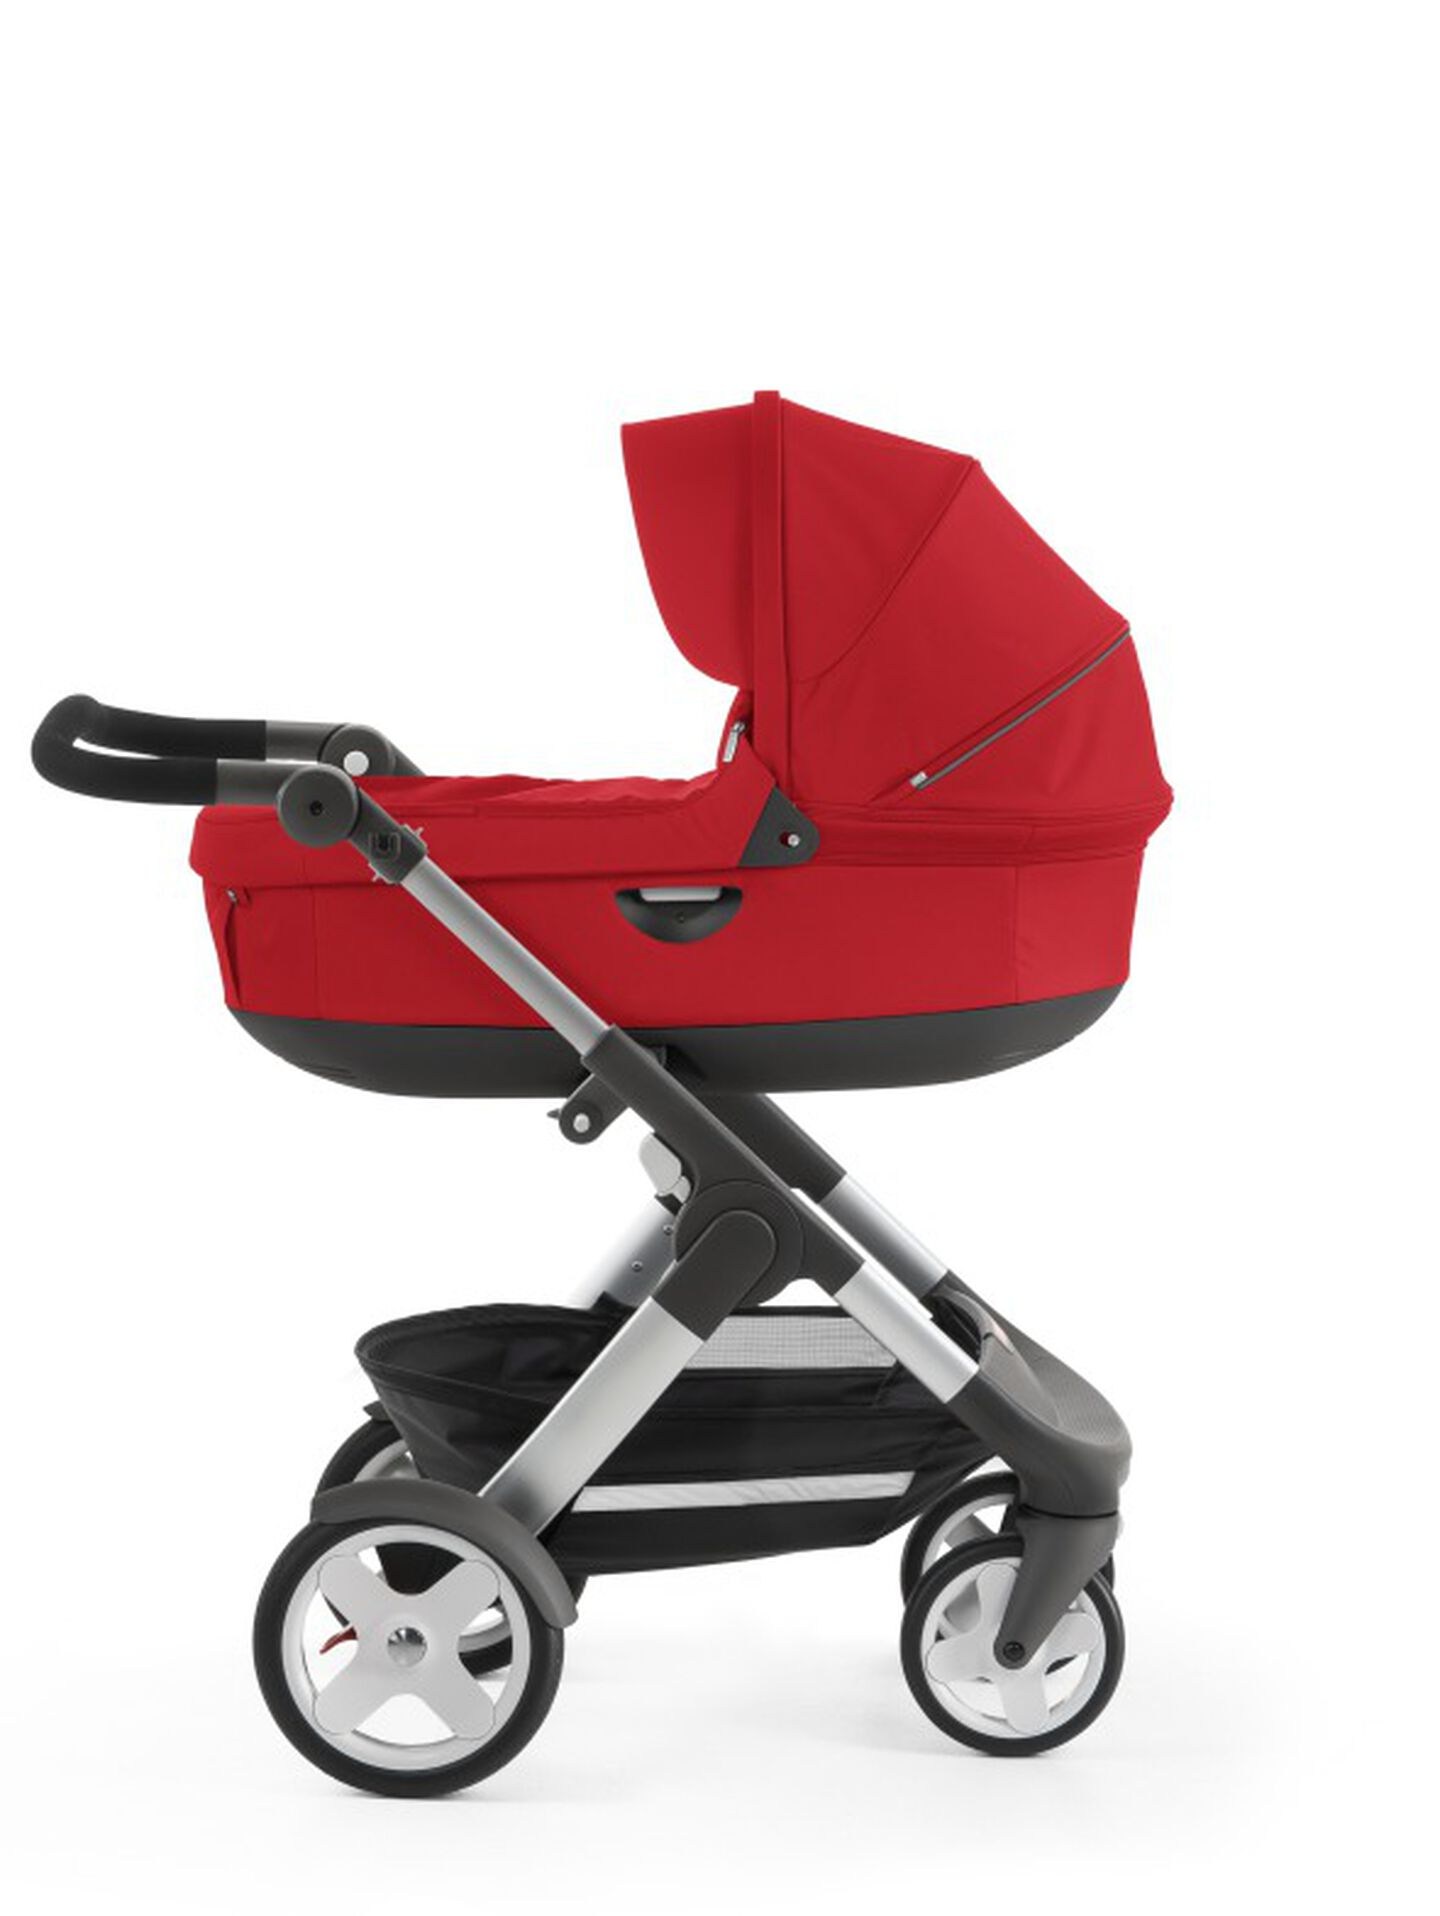 Stokke® Trailz™ with Stokke® Stroller Carry Cot, Red. Classic Wheels. view 2